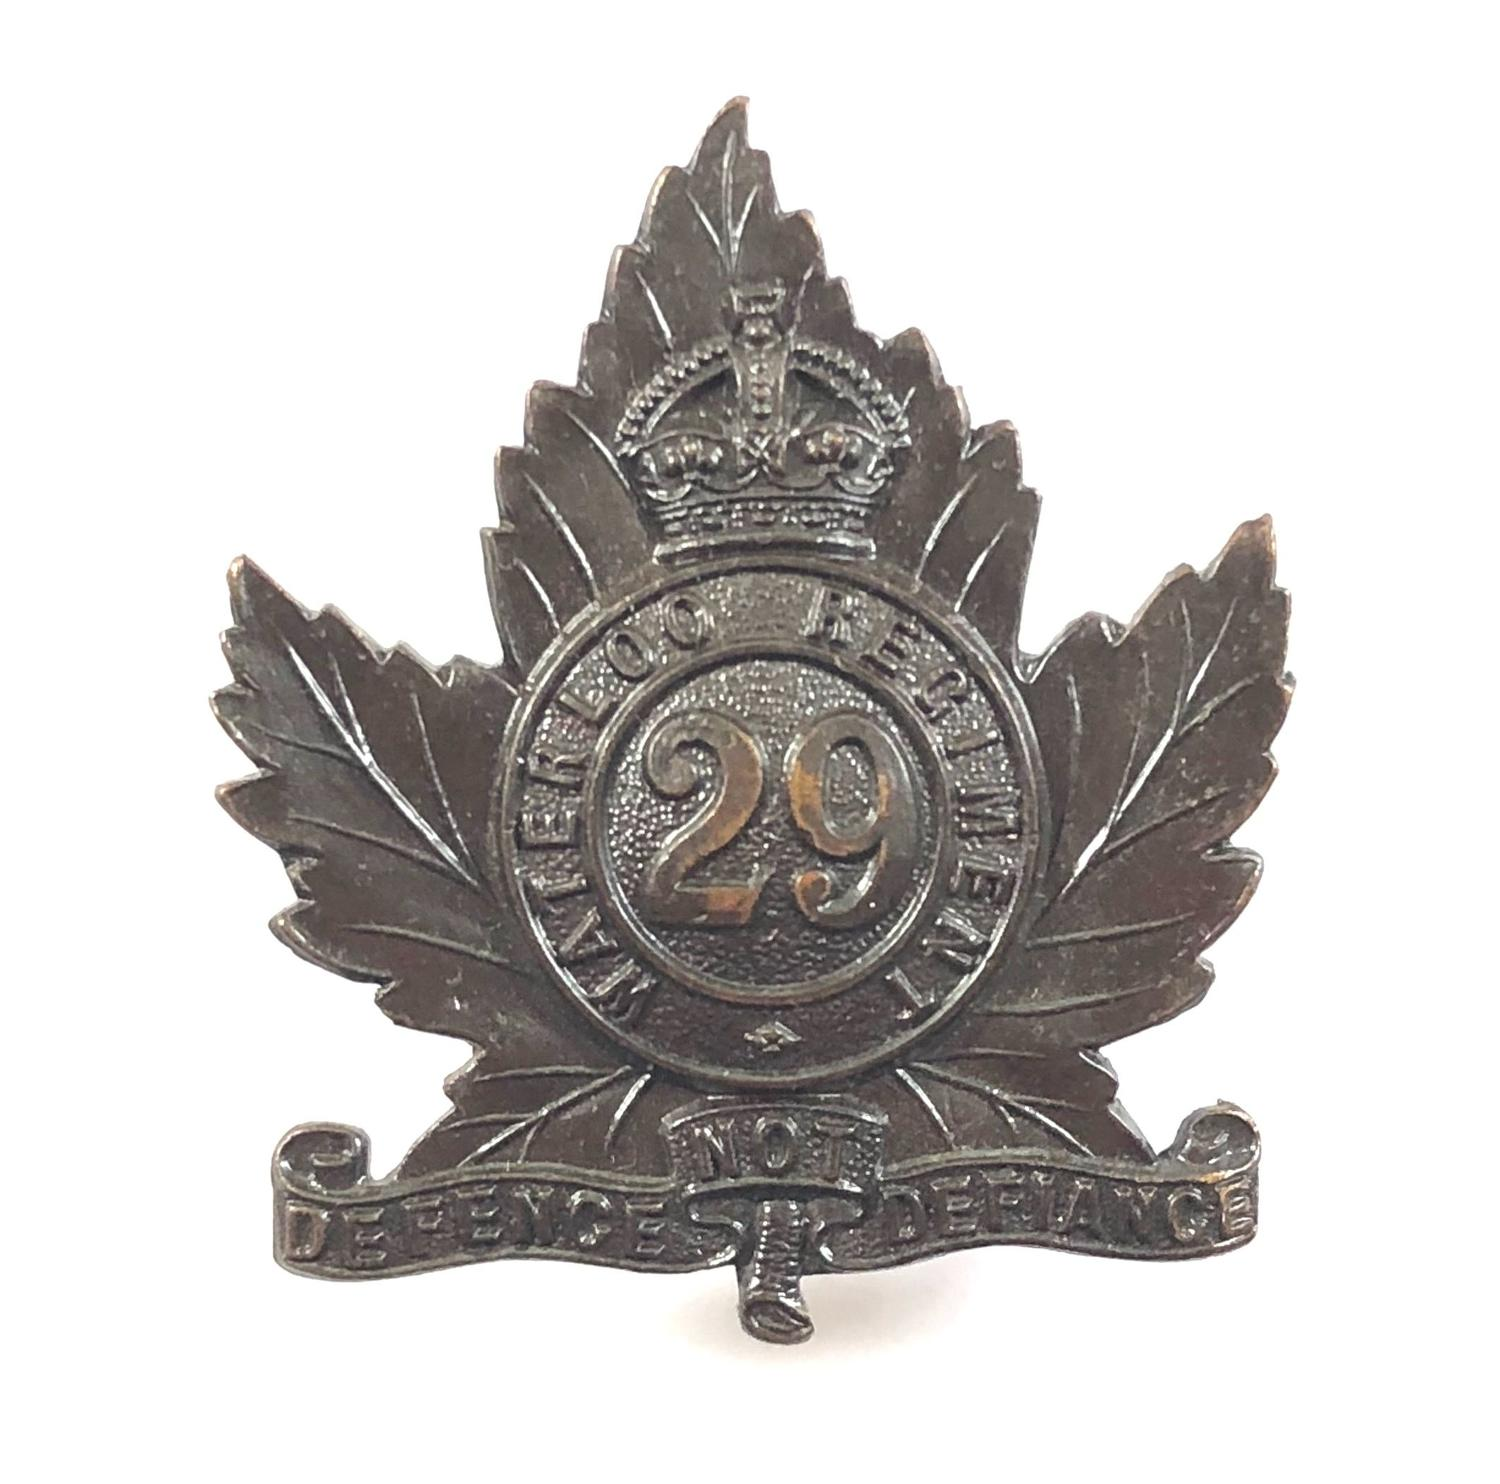 29th Regiment (Waterloo) Canadian Militia cap badge